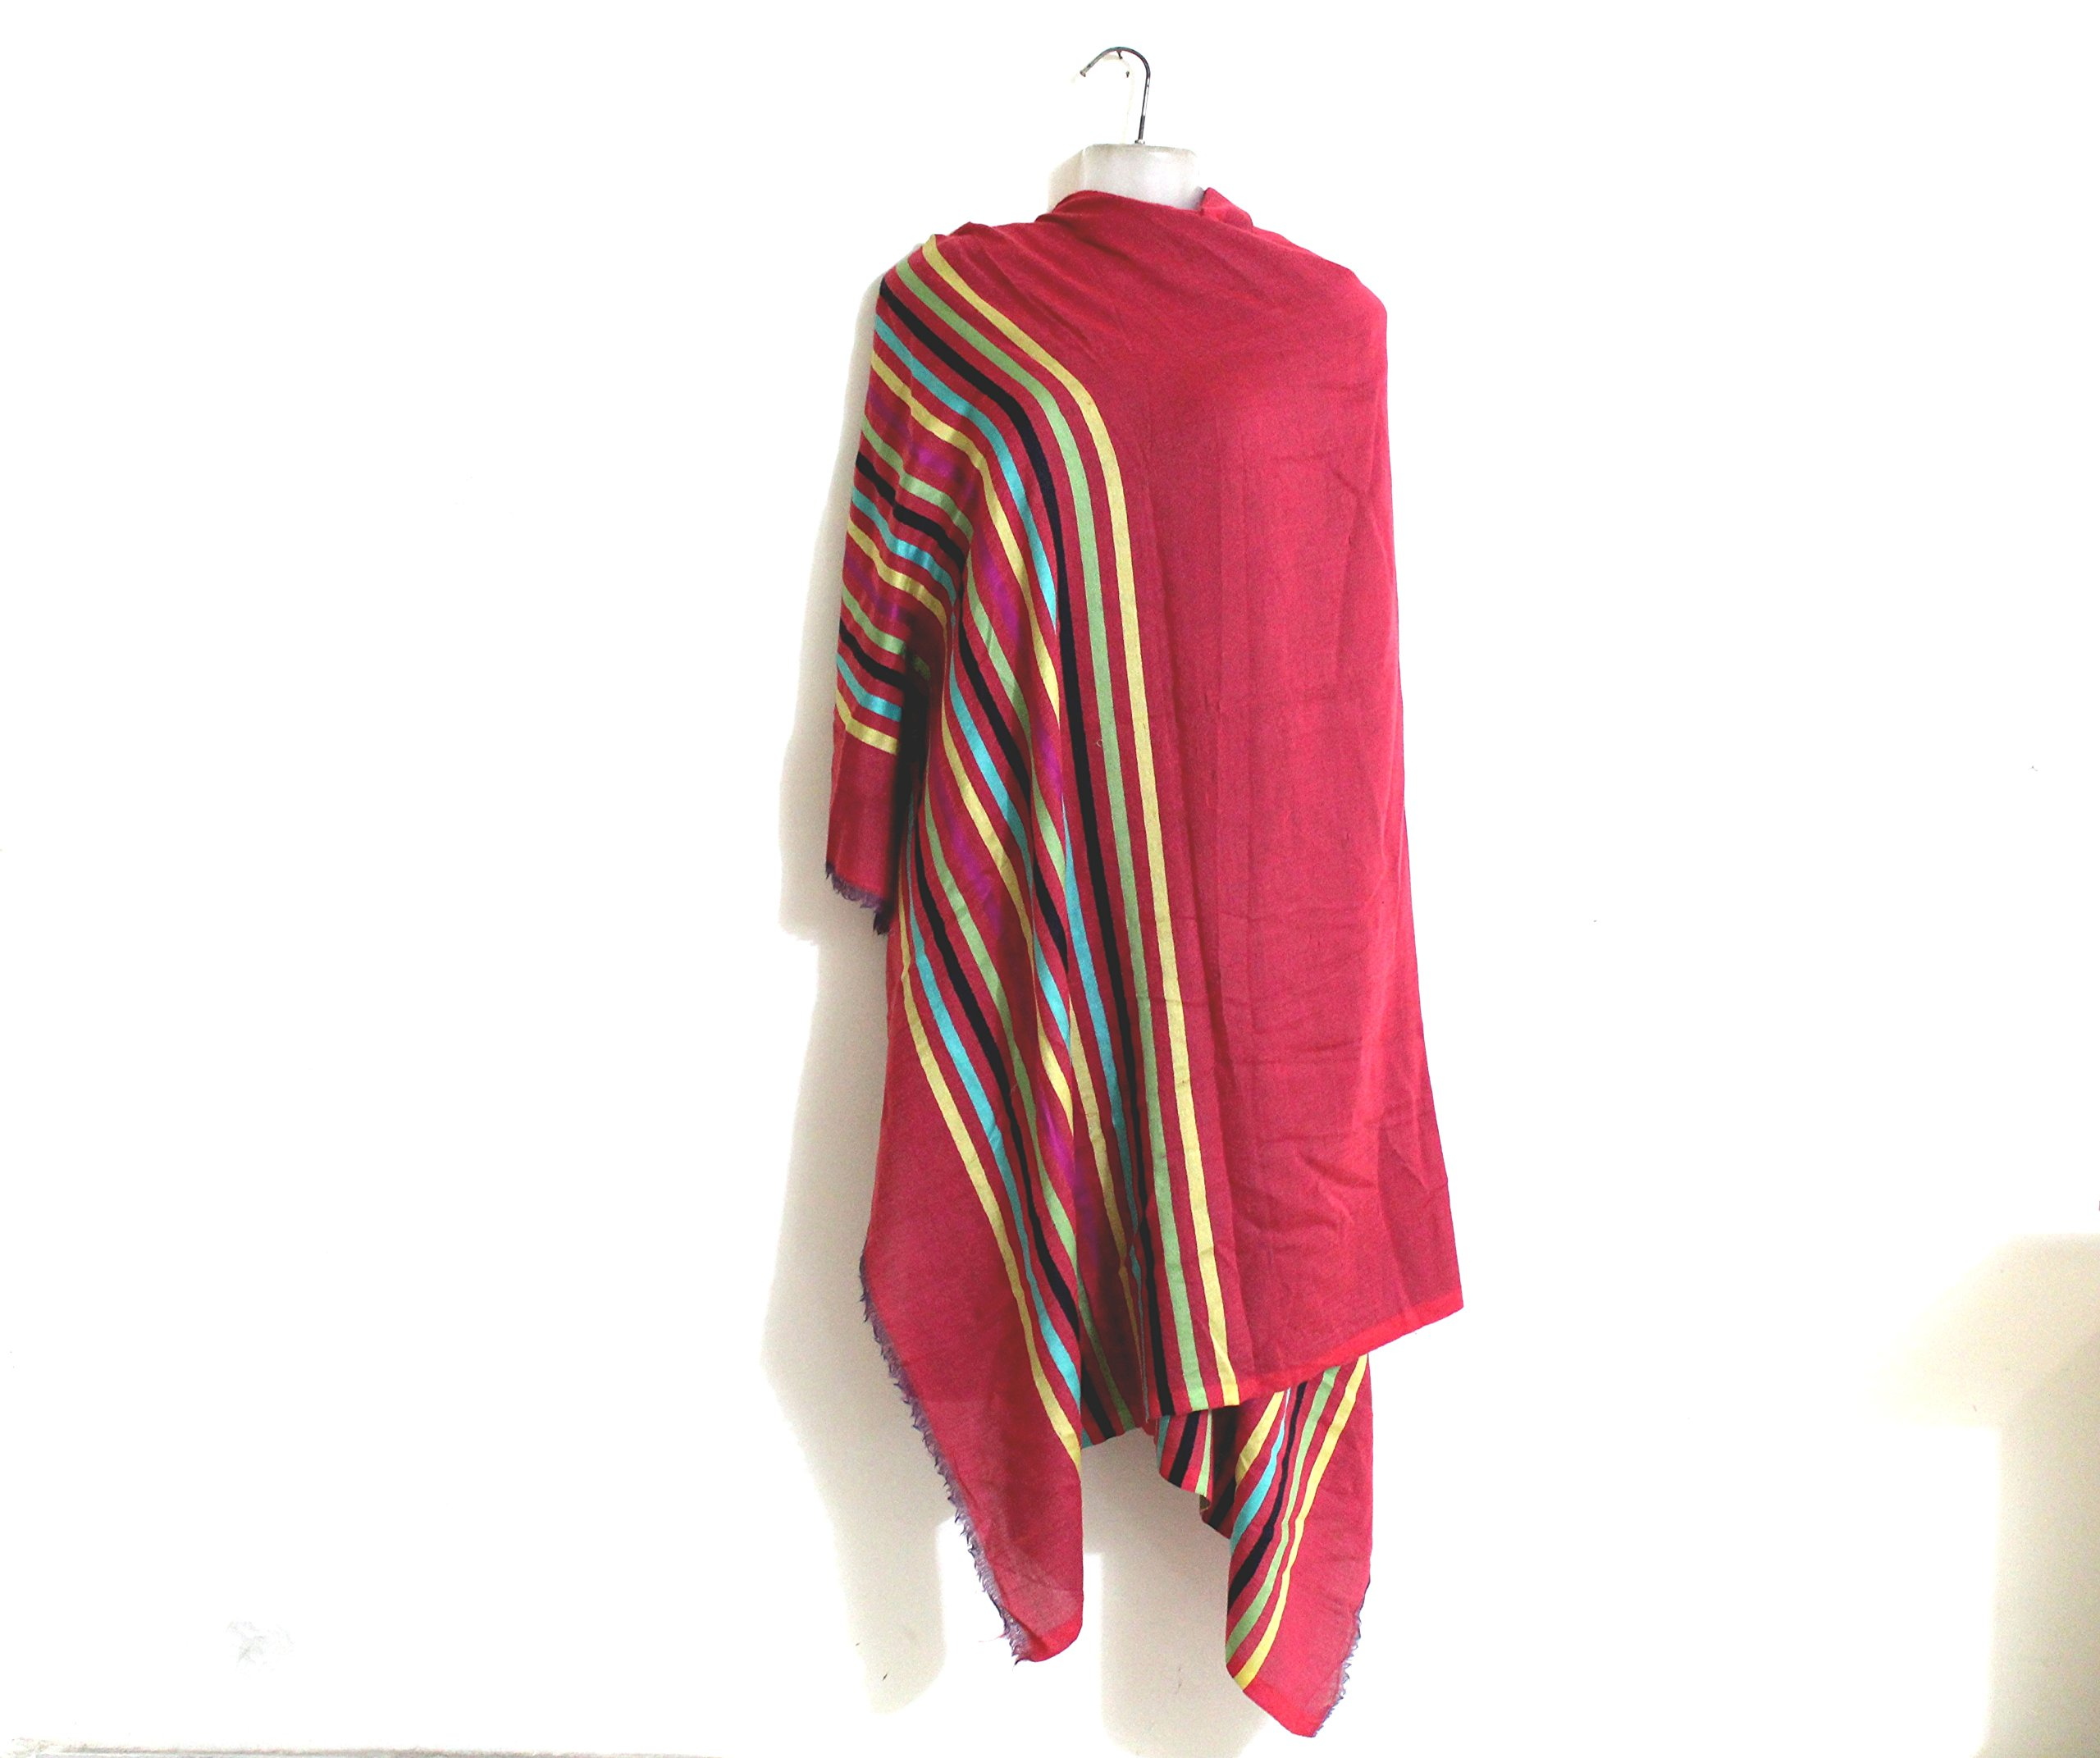 Red Pashmina scarves Colorful bridal wrap wedding shawl cashmere scarf bridesmaid gift -Size 76''x 27'' IDSC10 by iDukaancrafts (Image #1)